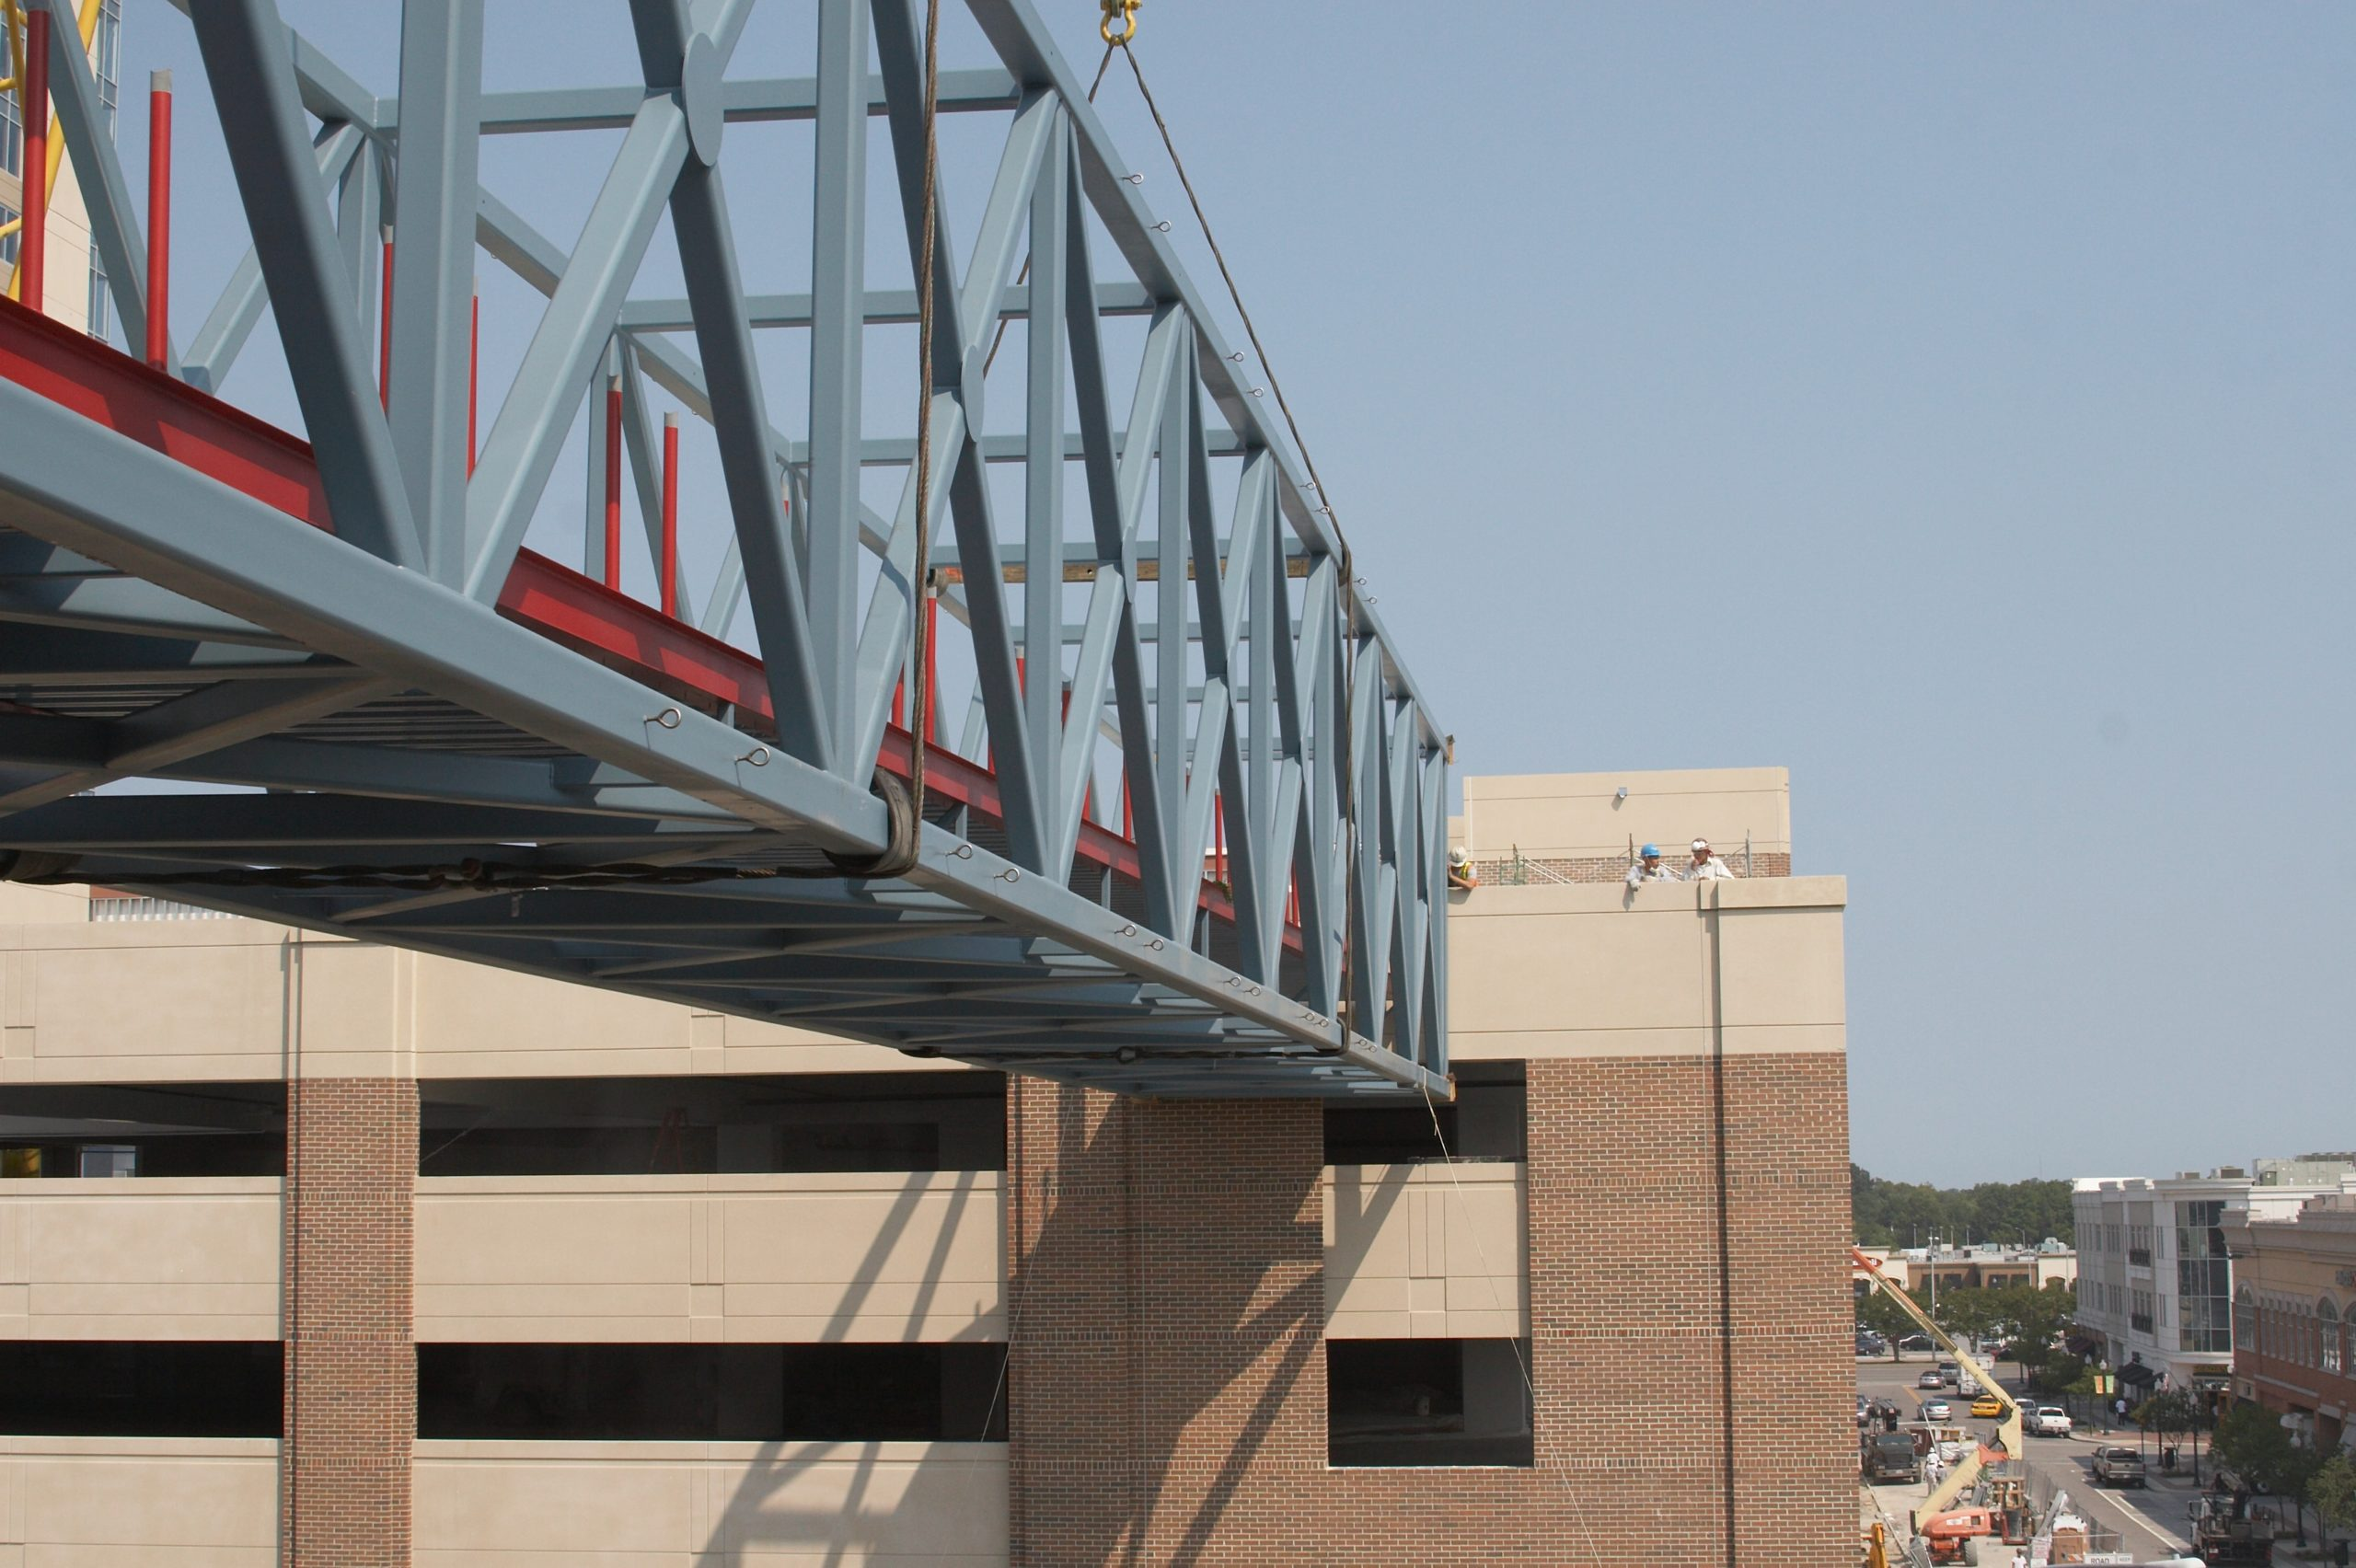 Lowering the bridge between two existing buildings